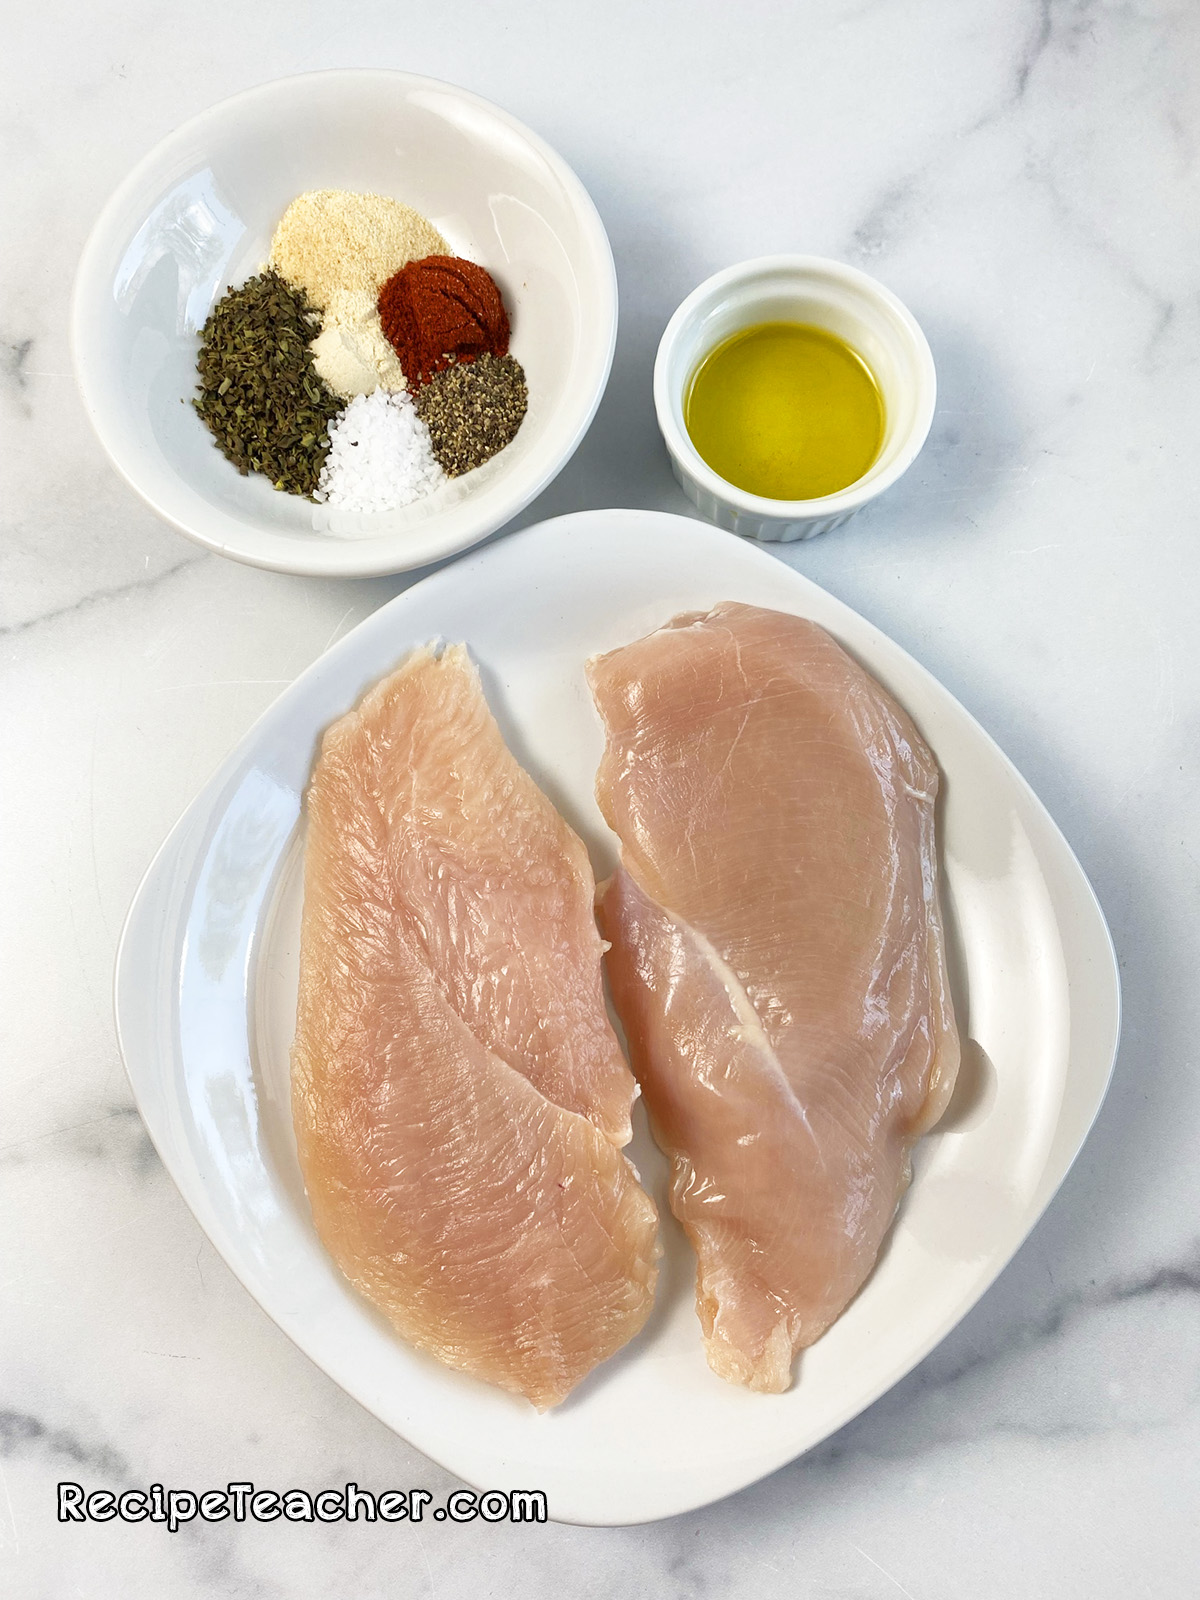 All the ingredients for George Foreman Grill chicken breasts